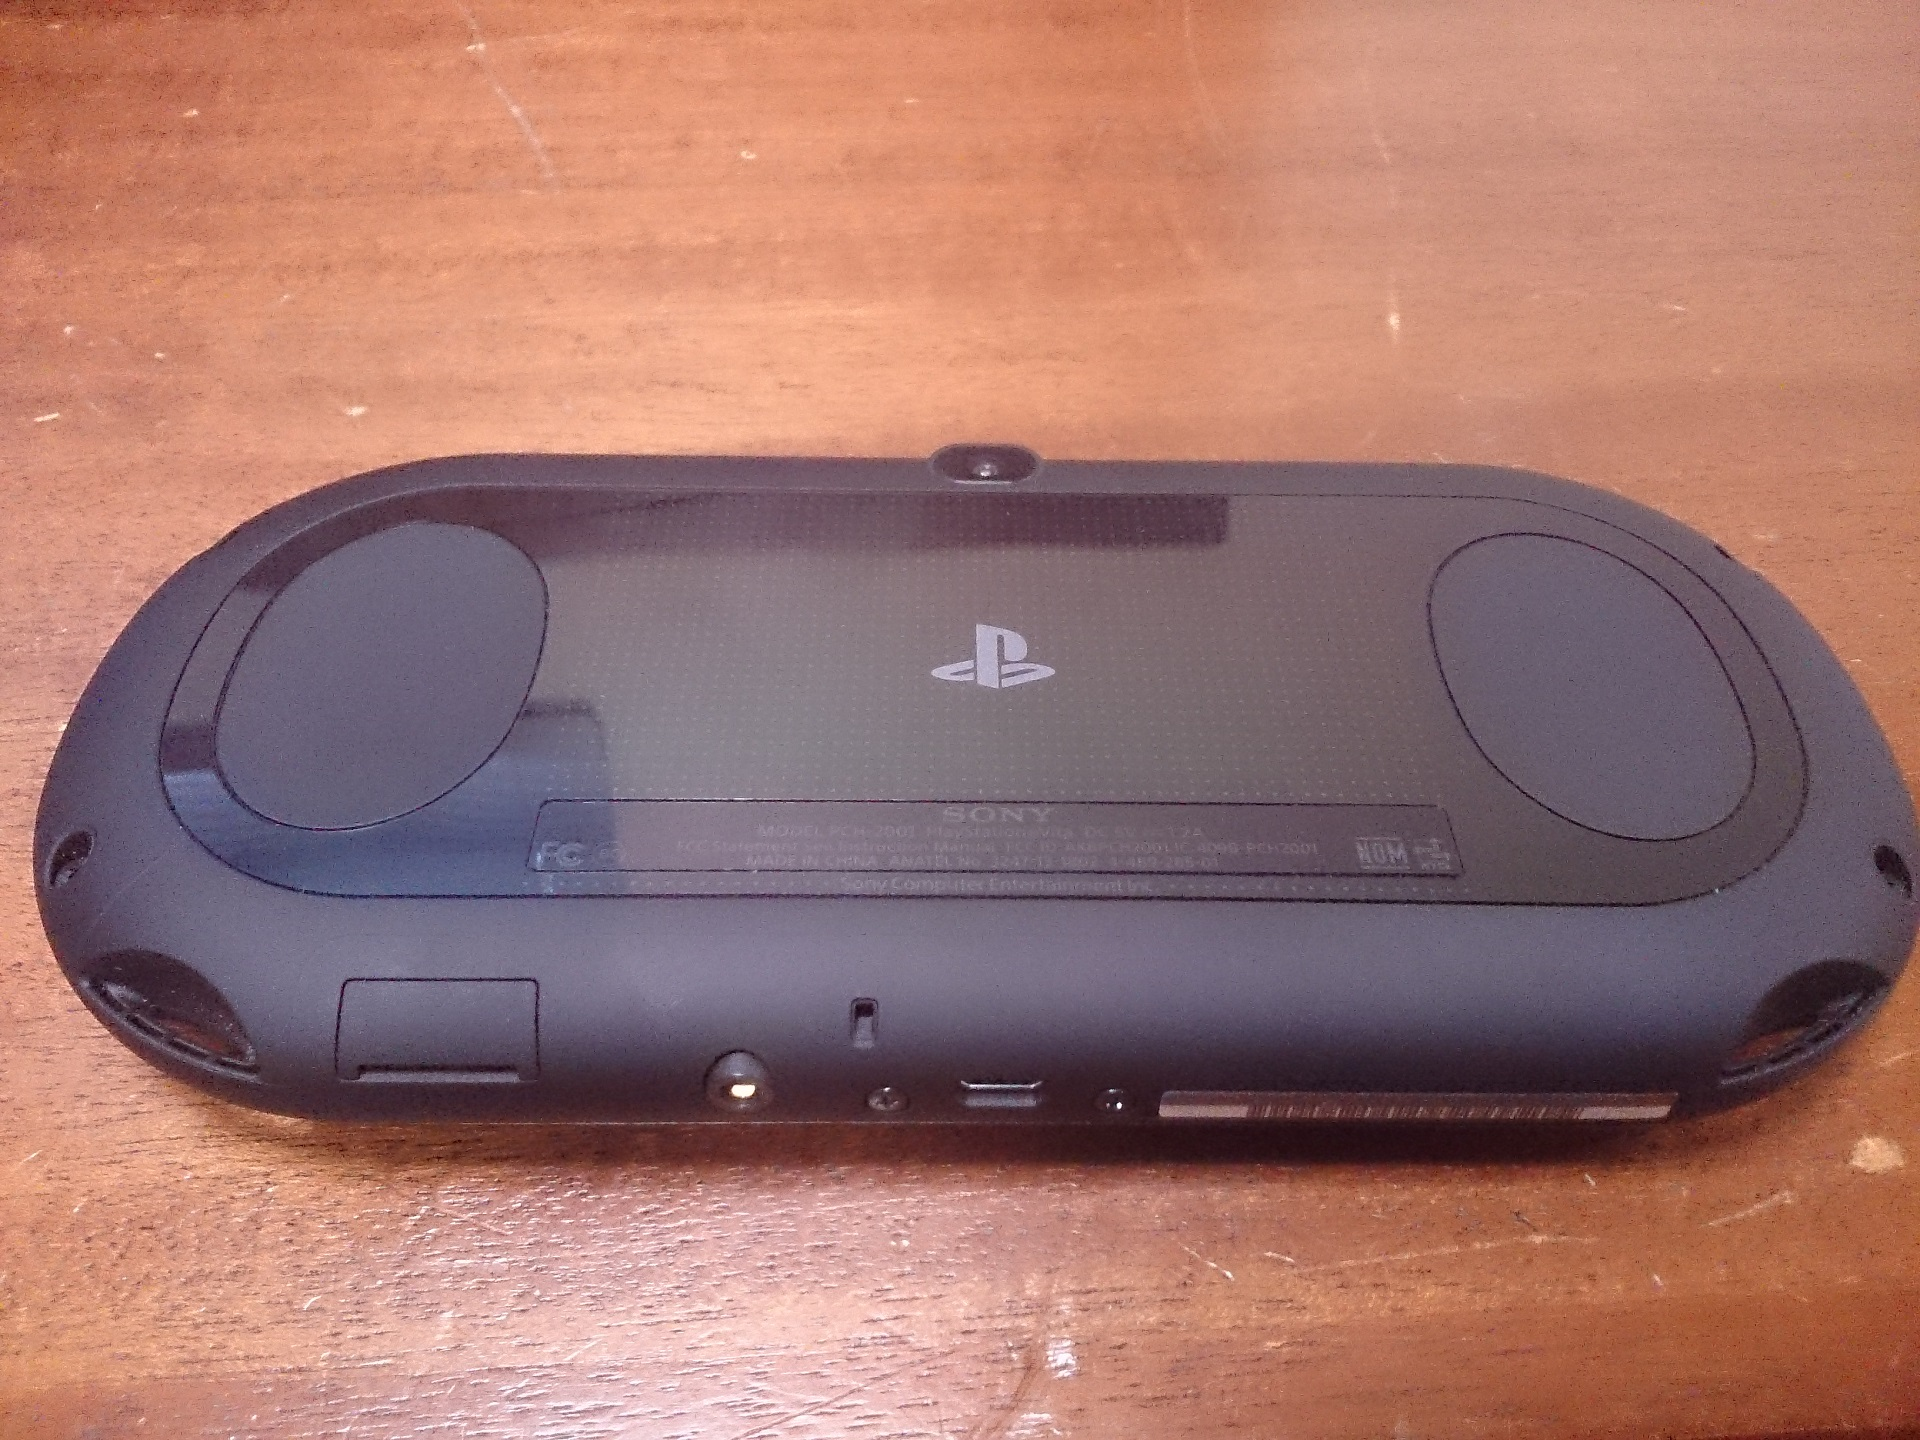 Notice the smaller rear pad and larger grips.